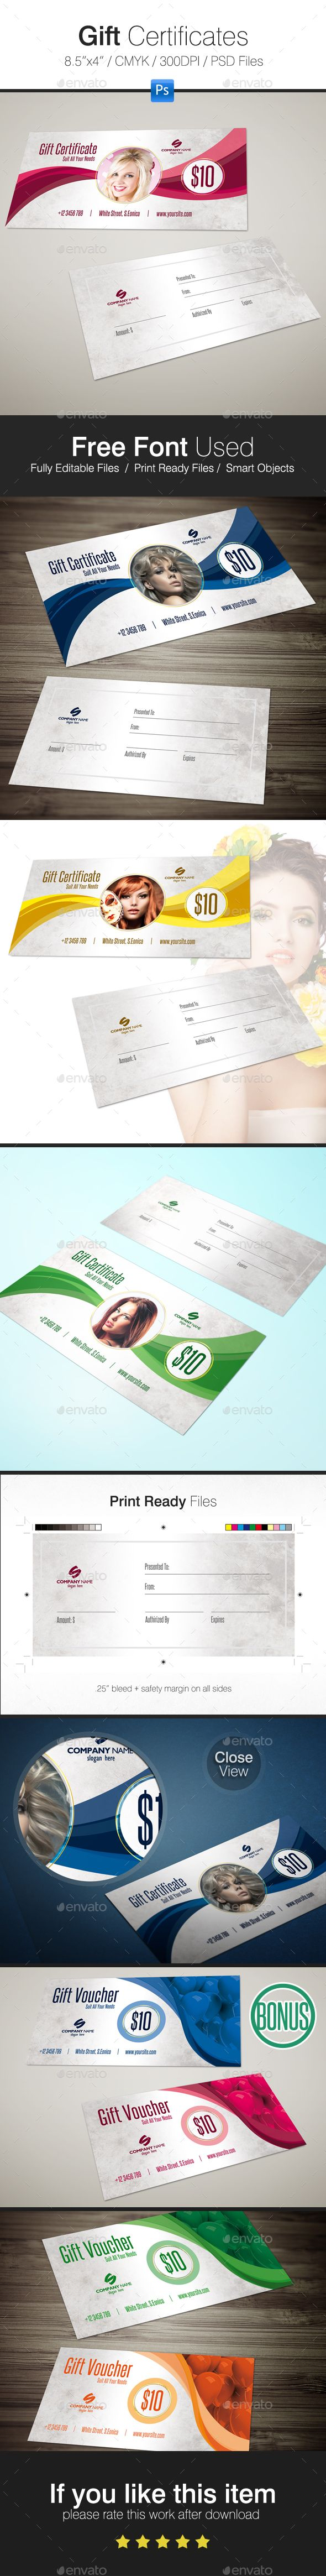 Gift Certificates + BONUS - Cards & Invites Print Templates Download: https://graphicriver.net/item/gift-voucher/19171392